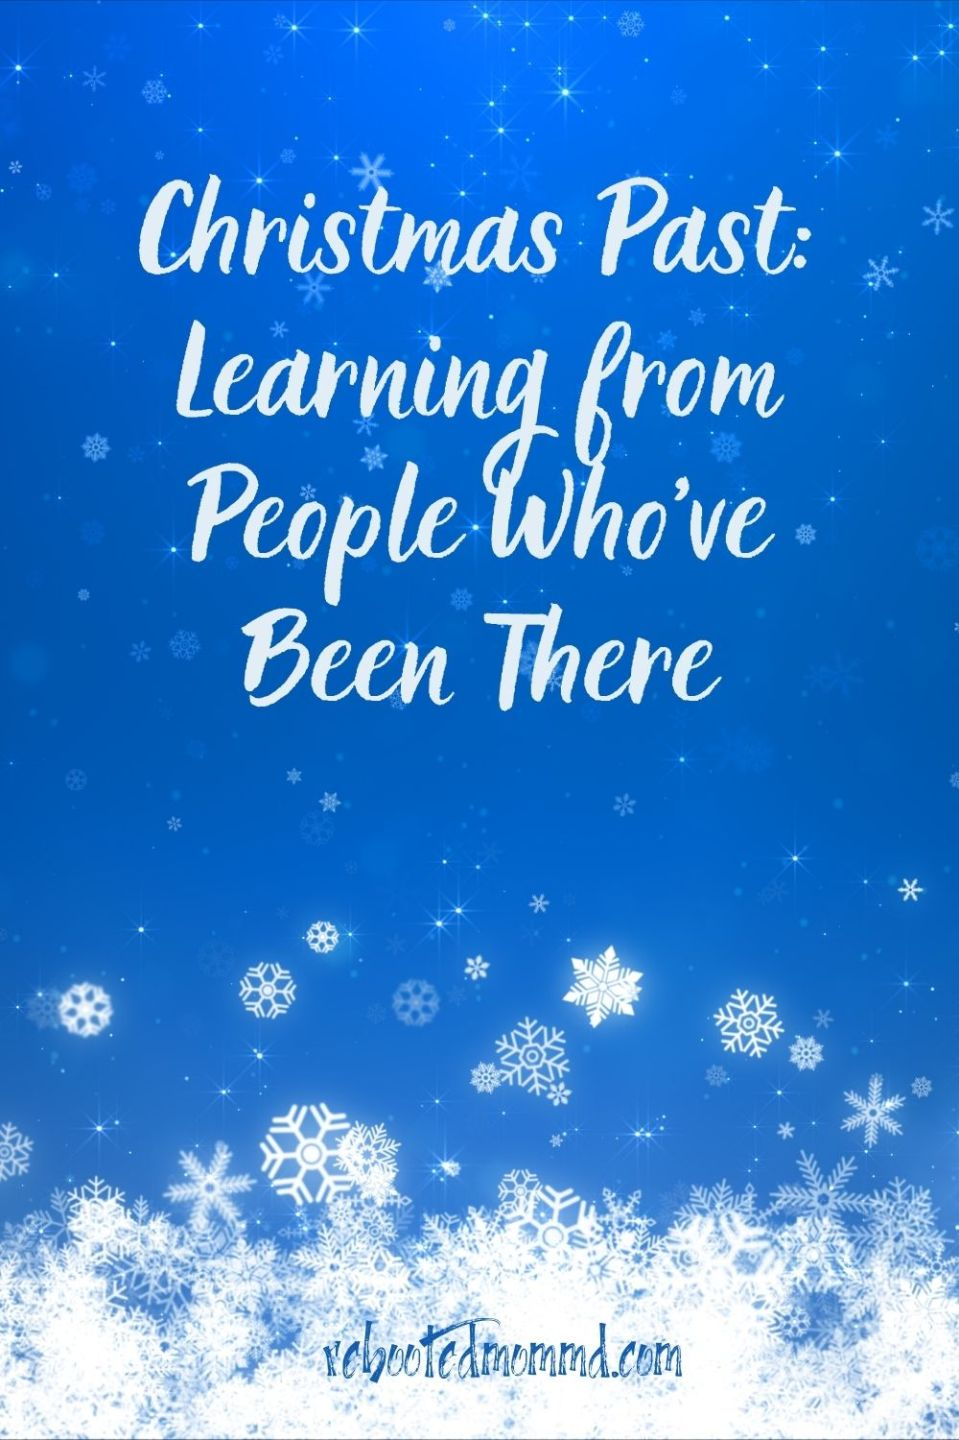 Christmas Past: Learning from People Who've Been There